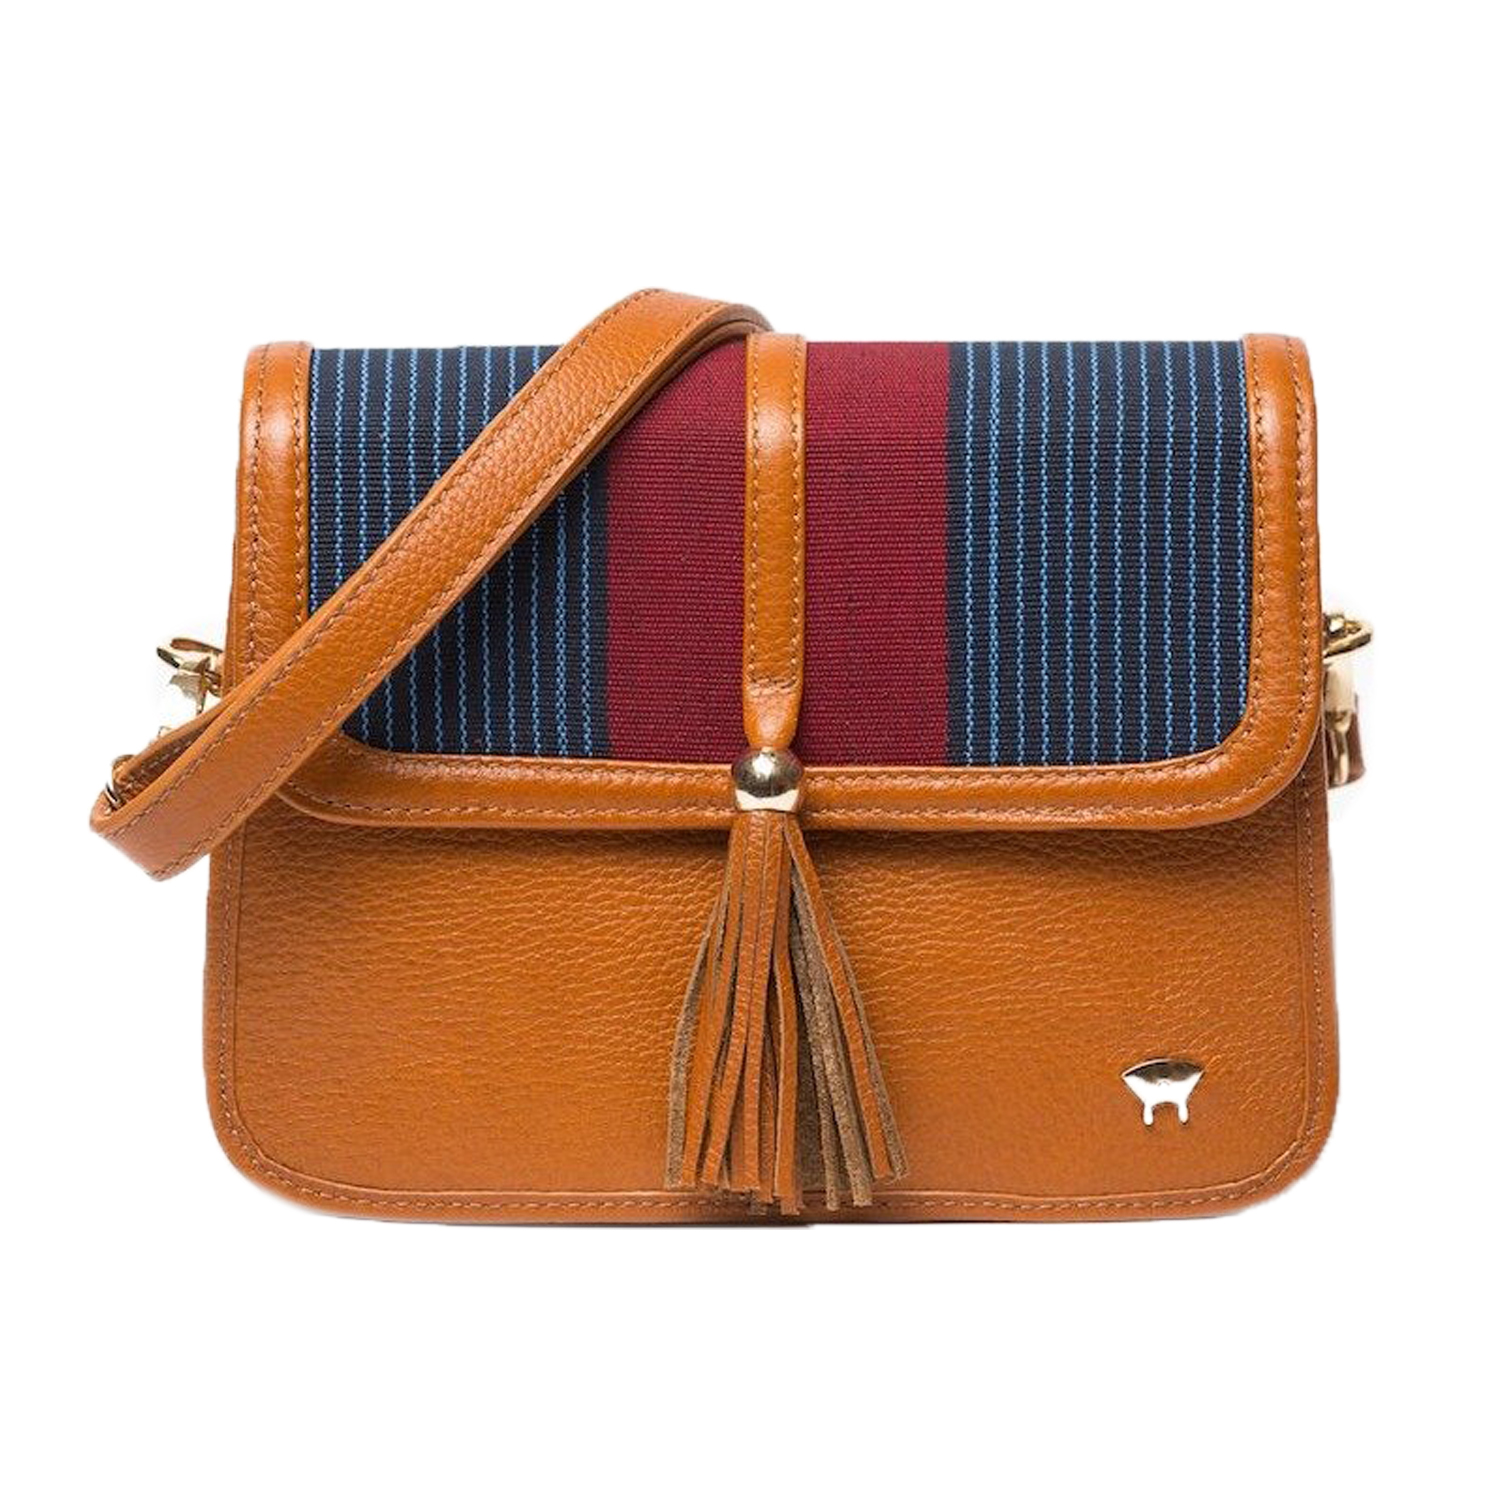 Tola Legend,   Olori    $165  {use code  SUSTAINABLYCHIC  for 10% off}